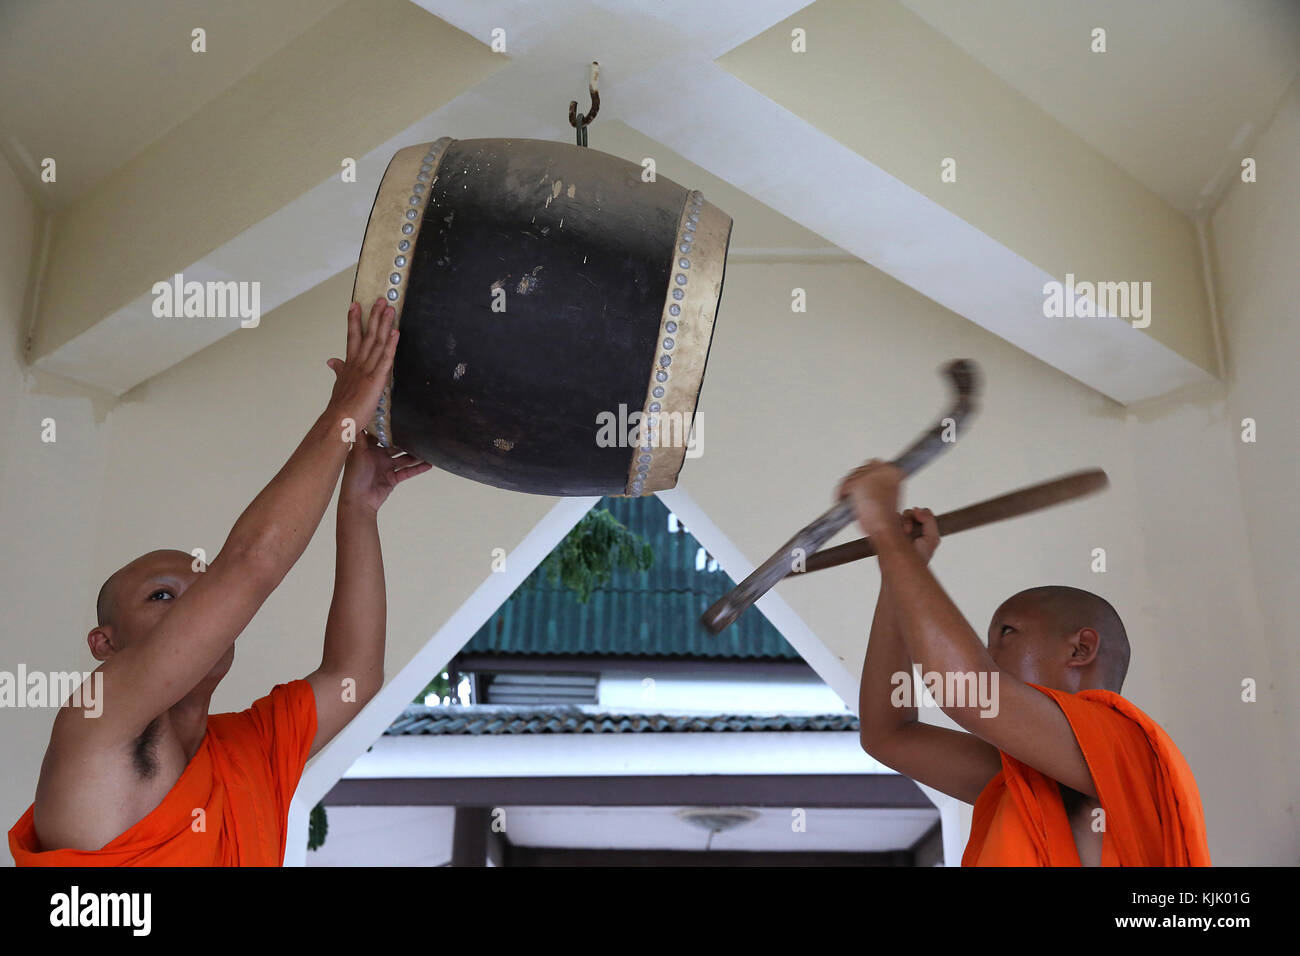 Monks beating drum in a Hua Hin temple. Thailand. - Stock Image